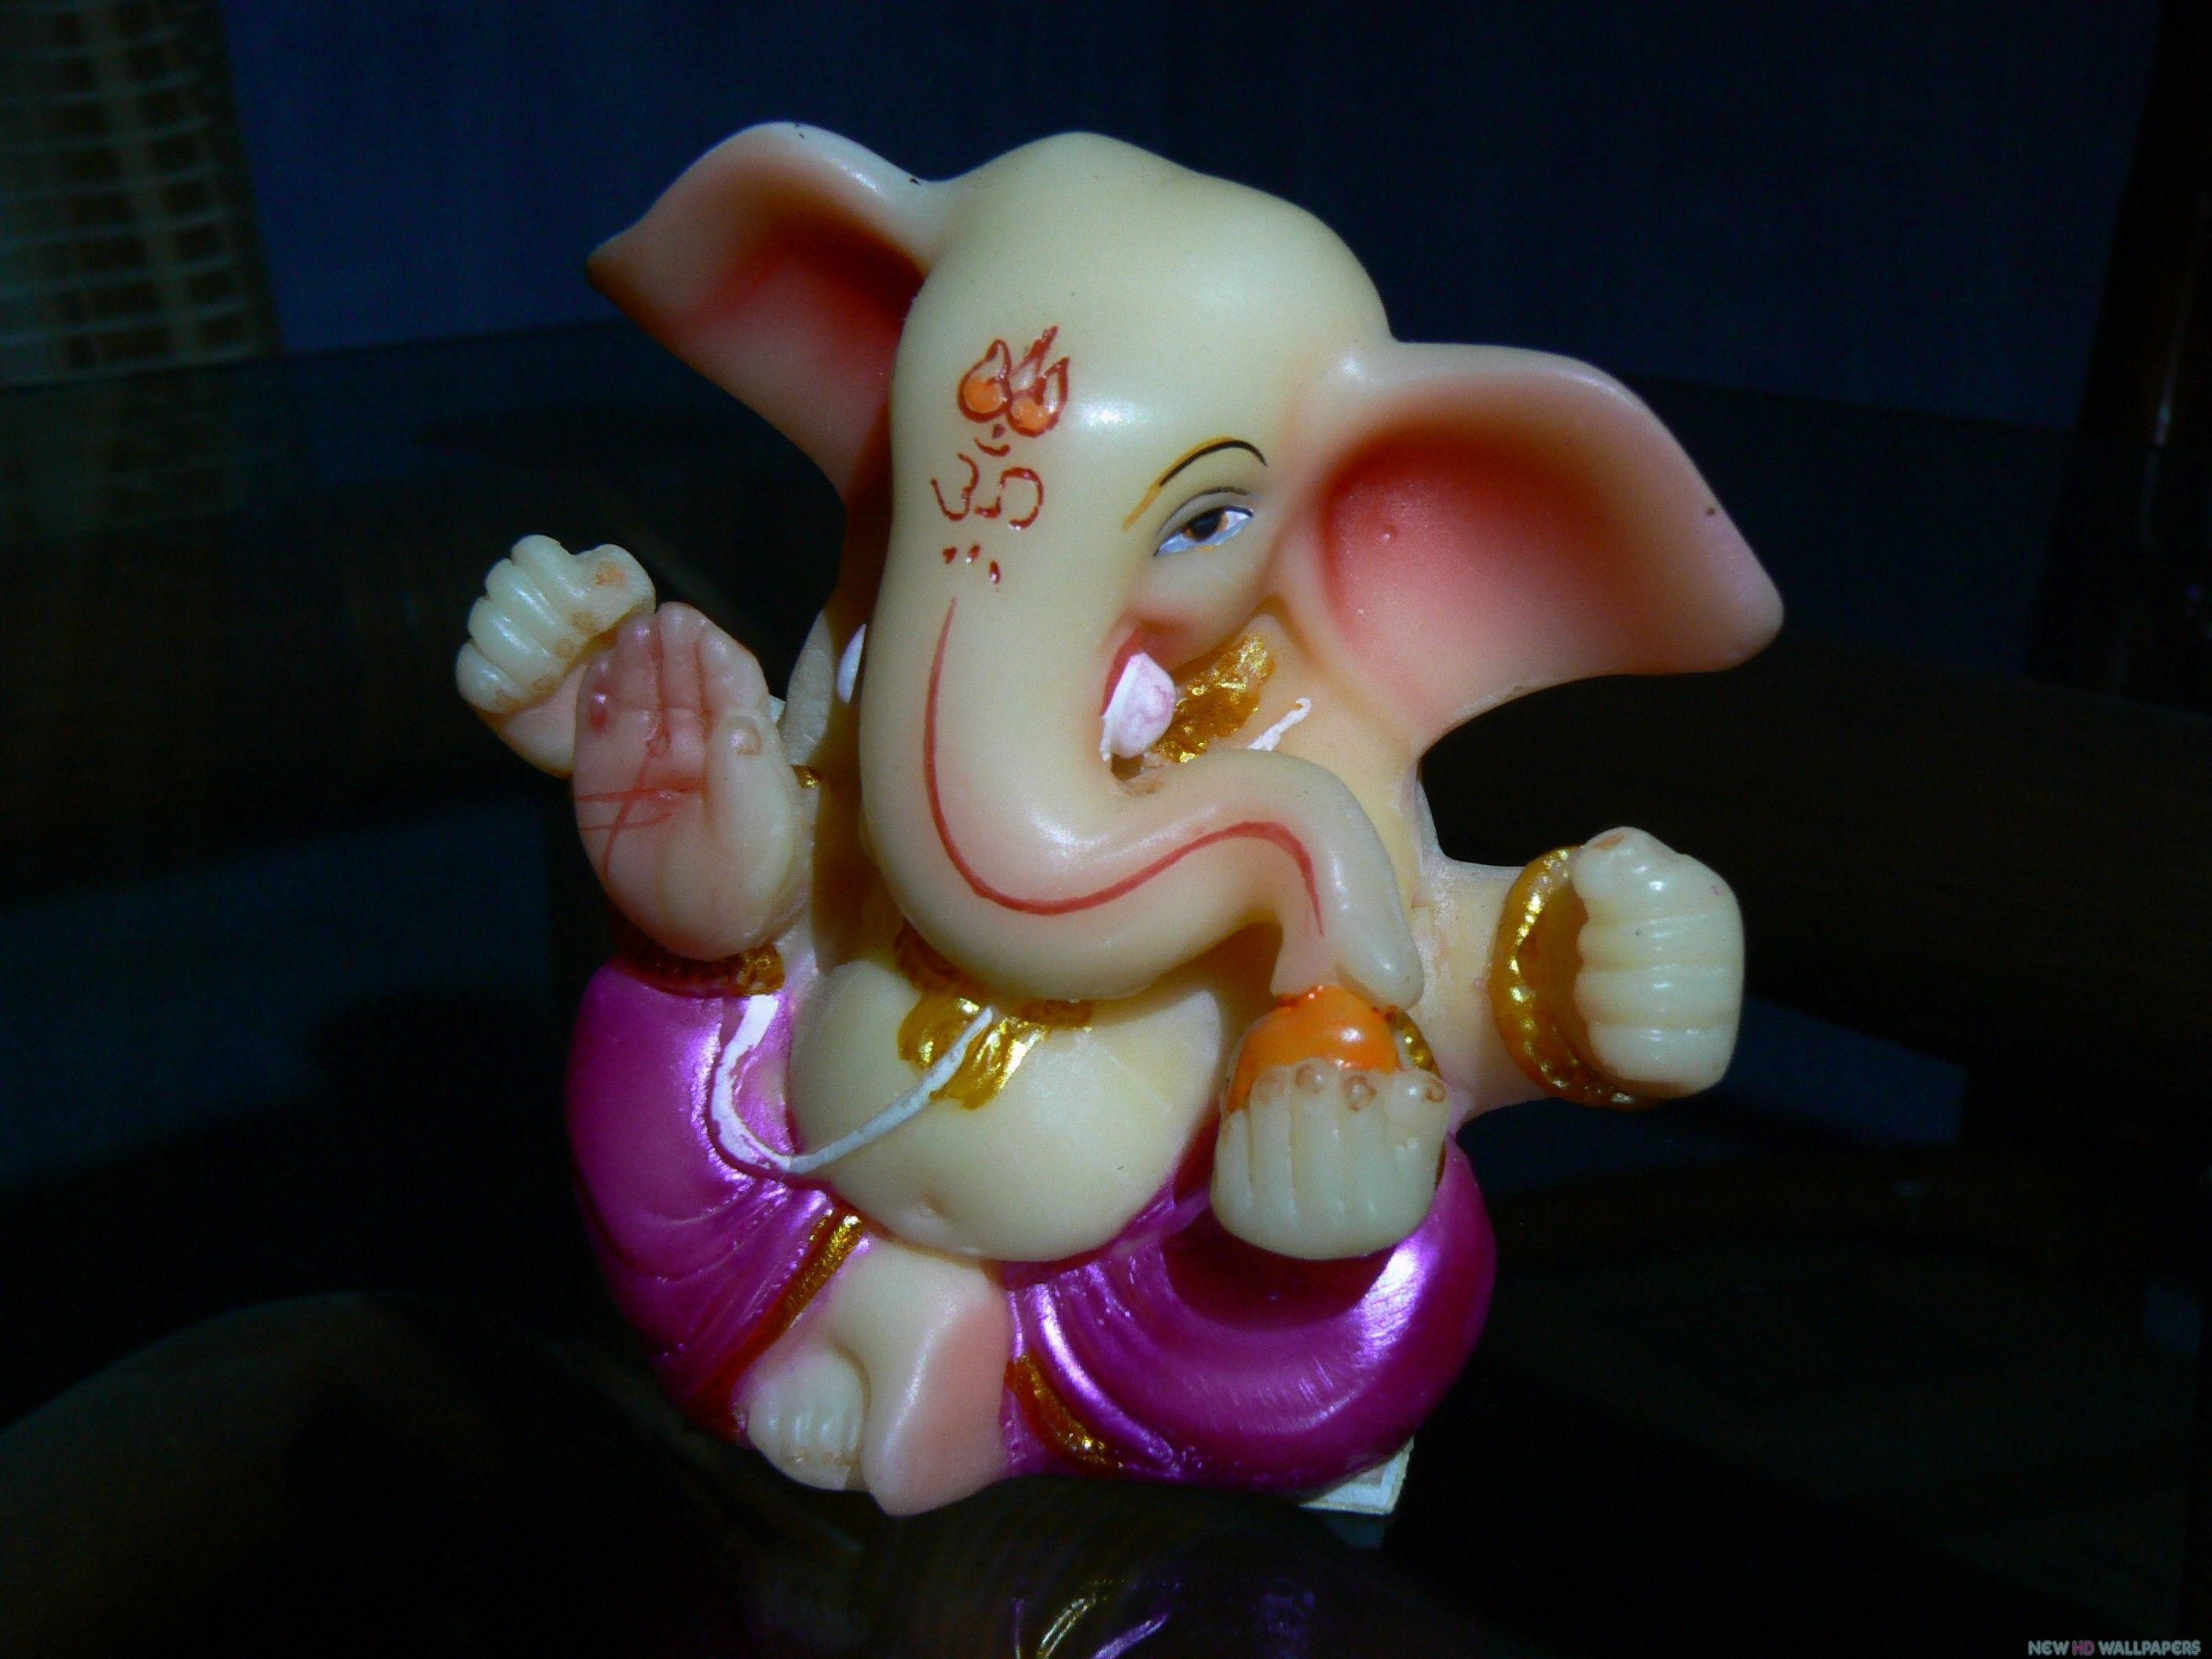 Hd wallpaper ganesh - Top Lord Ganesha Beautiful Images Wallpapers Latest Pictures